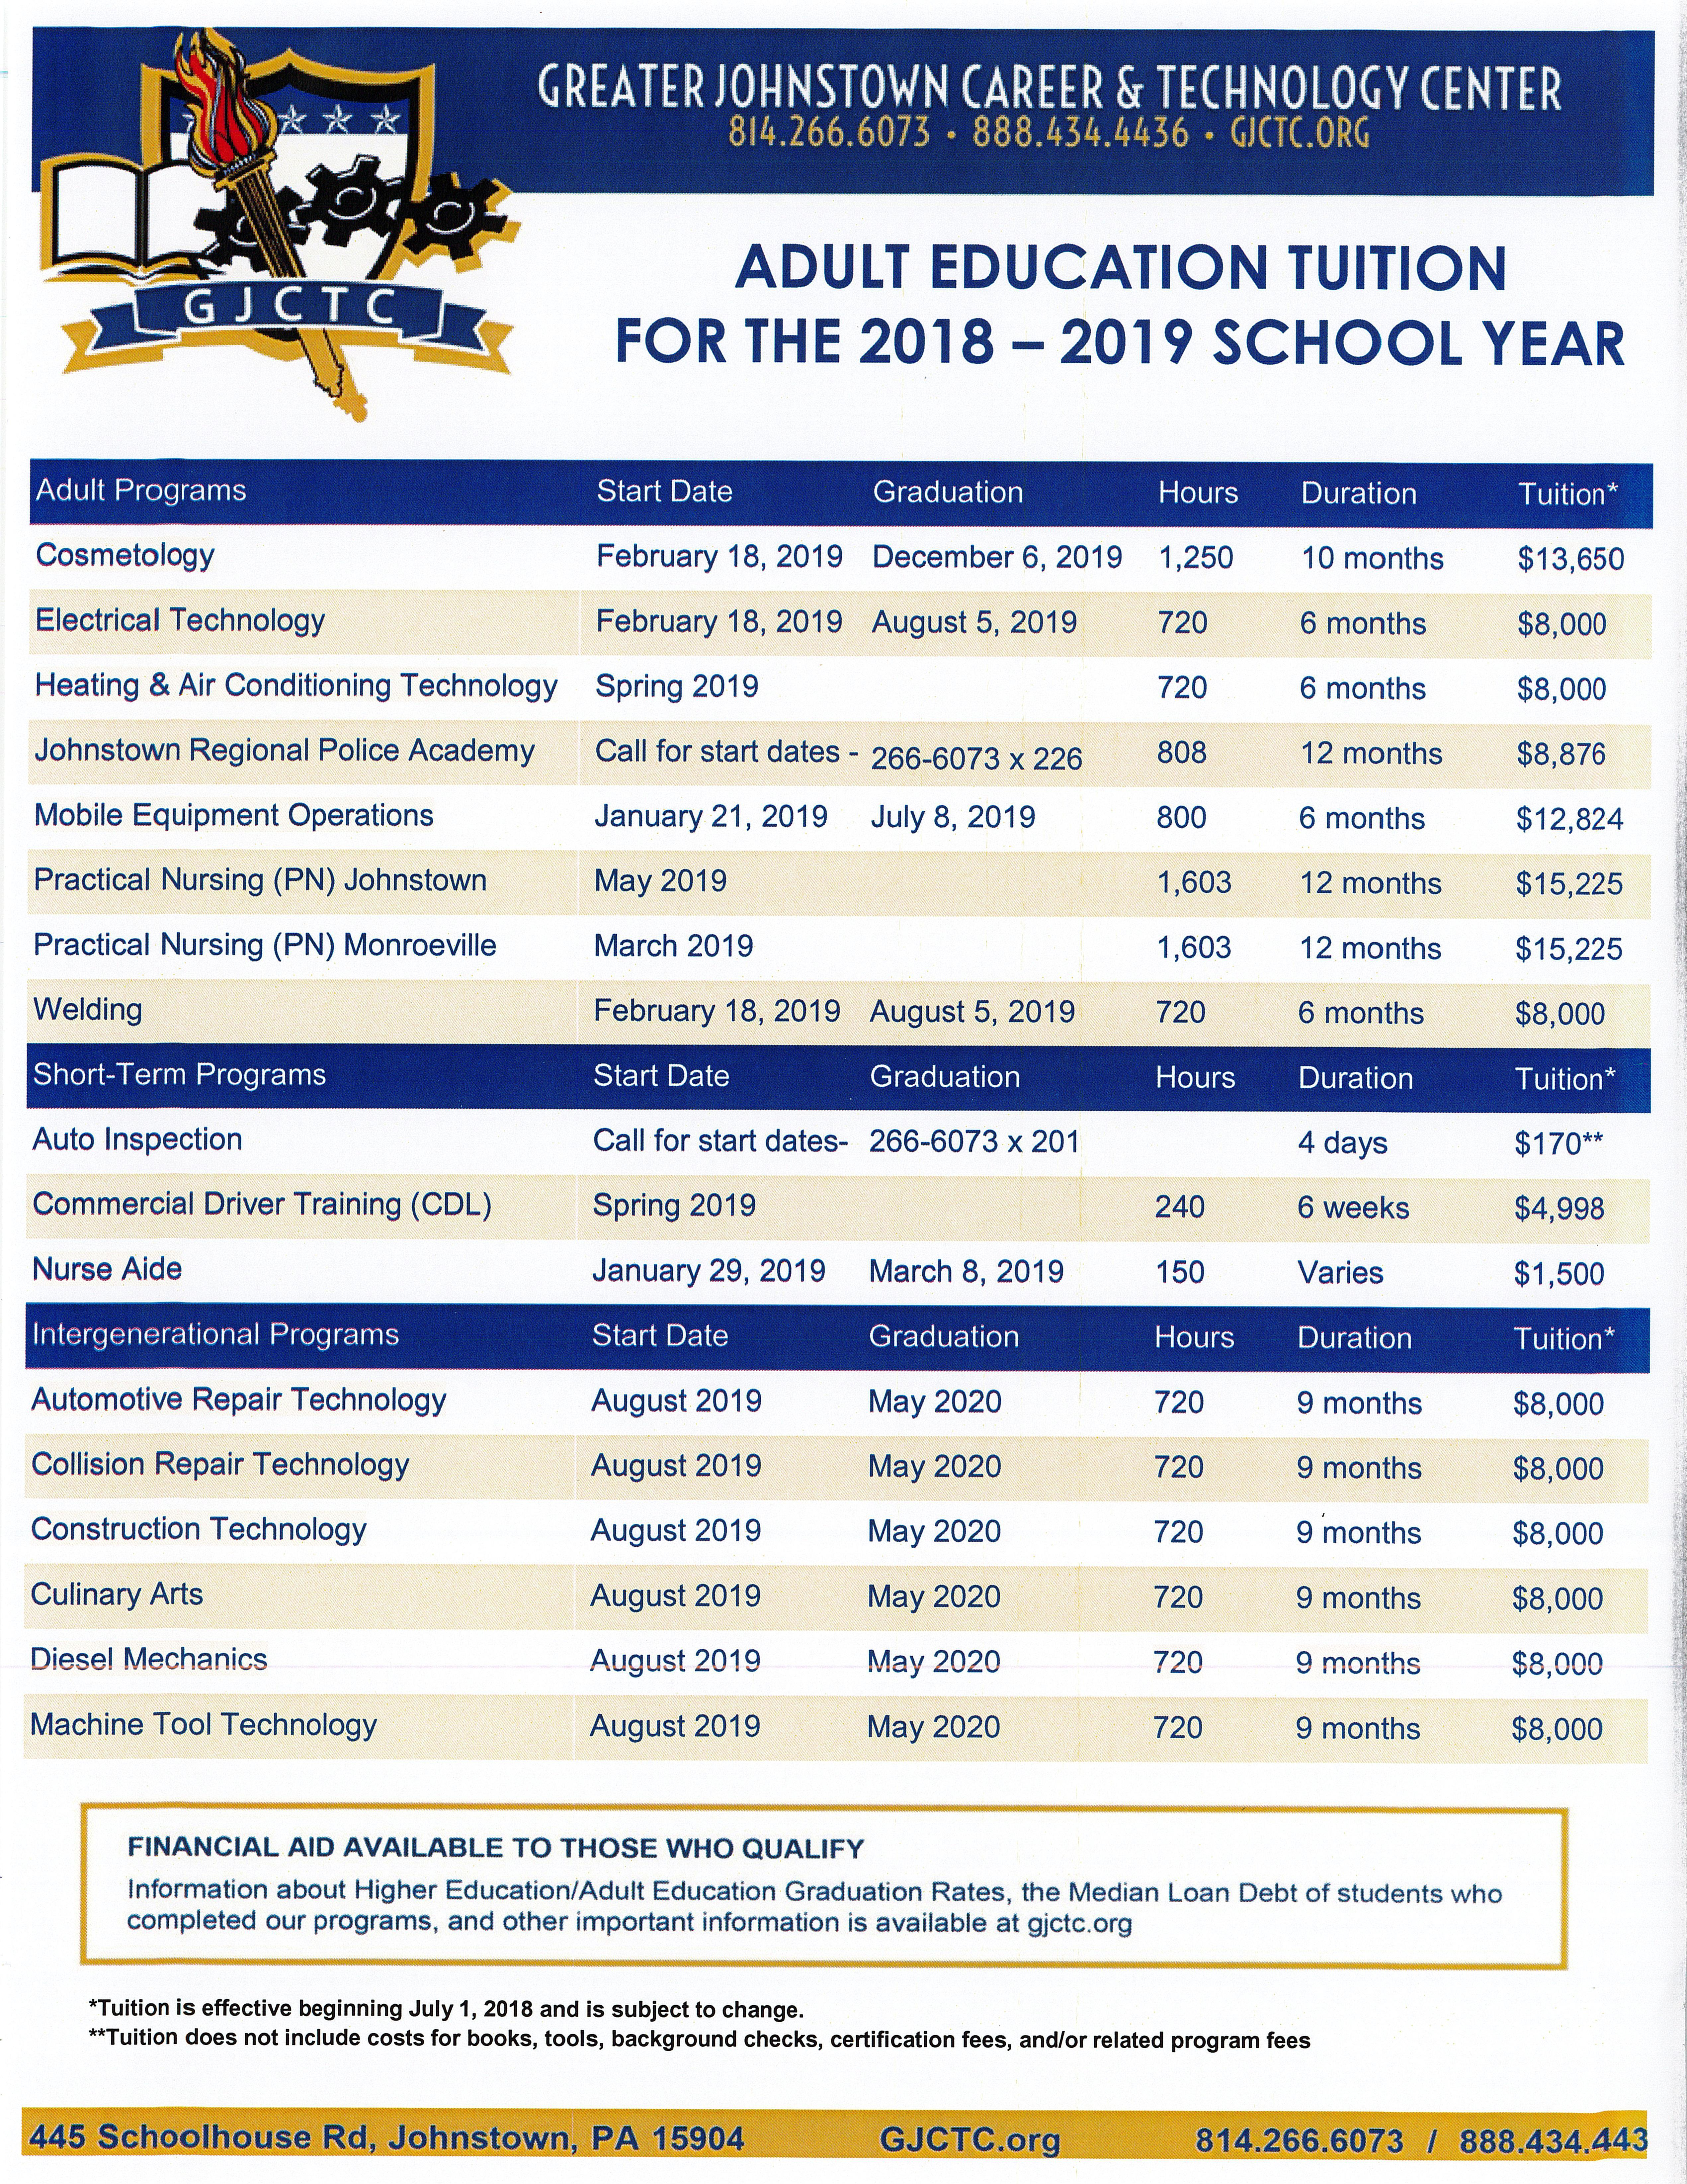 Greater Johnstown Career & Technology Center 2018-2019 Adult Education Programs